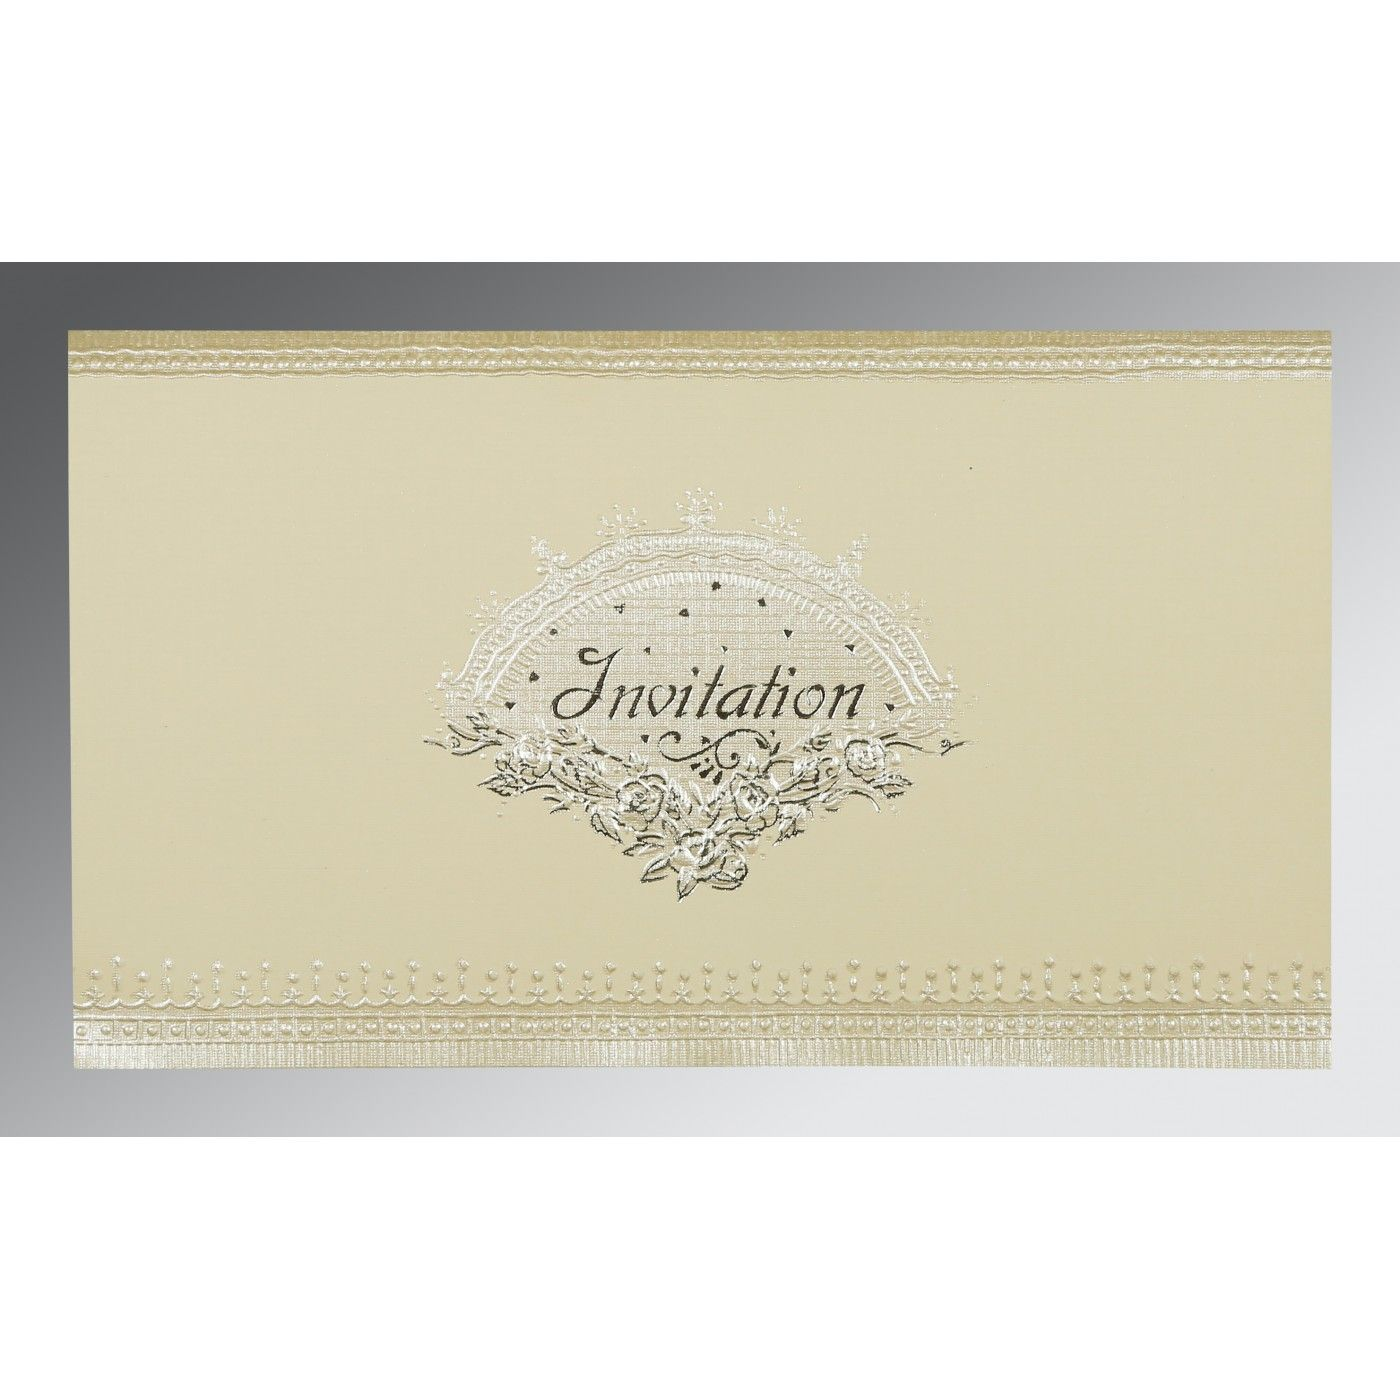 OFF-WHITE MATTE FOIL STAMPED WEDDING INVITATION : CSO-1338 - IndianWeddingCards